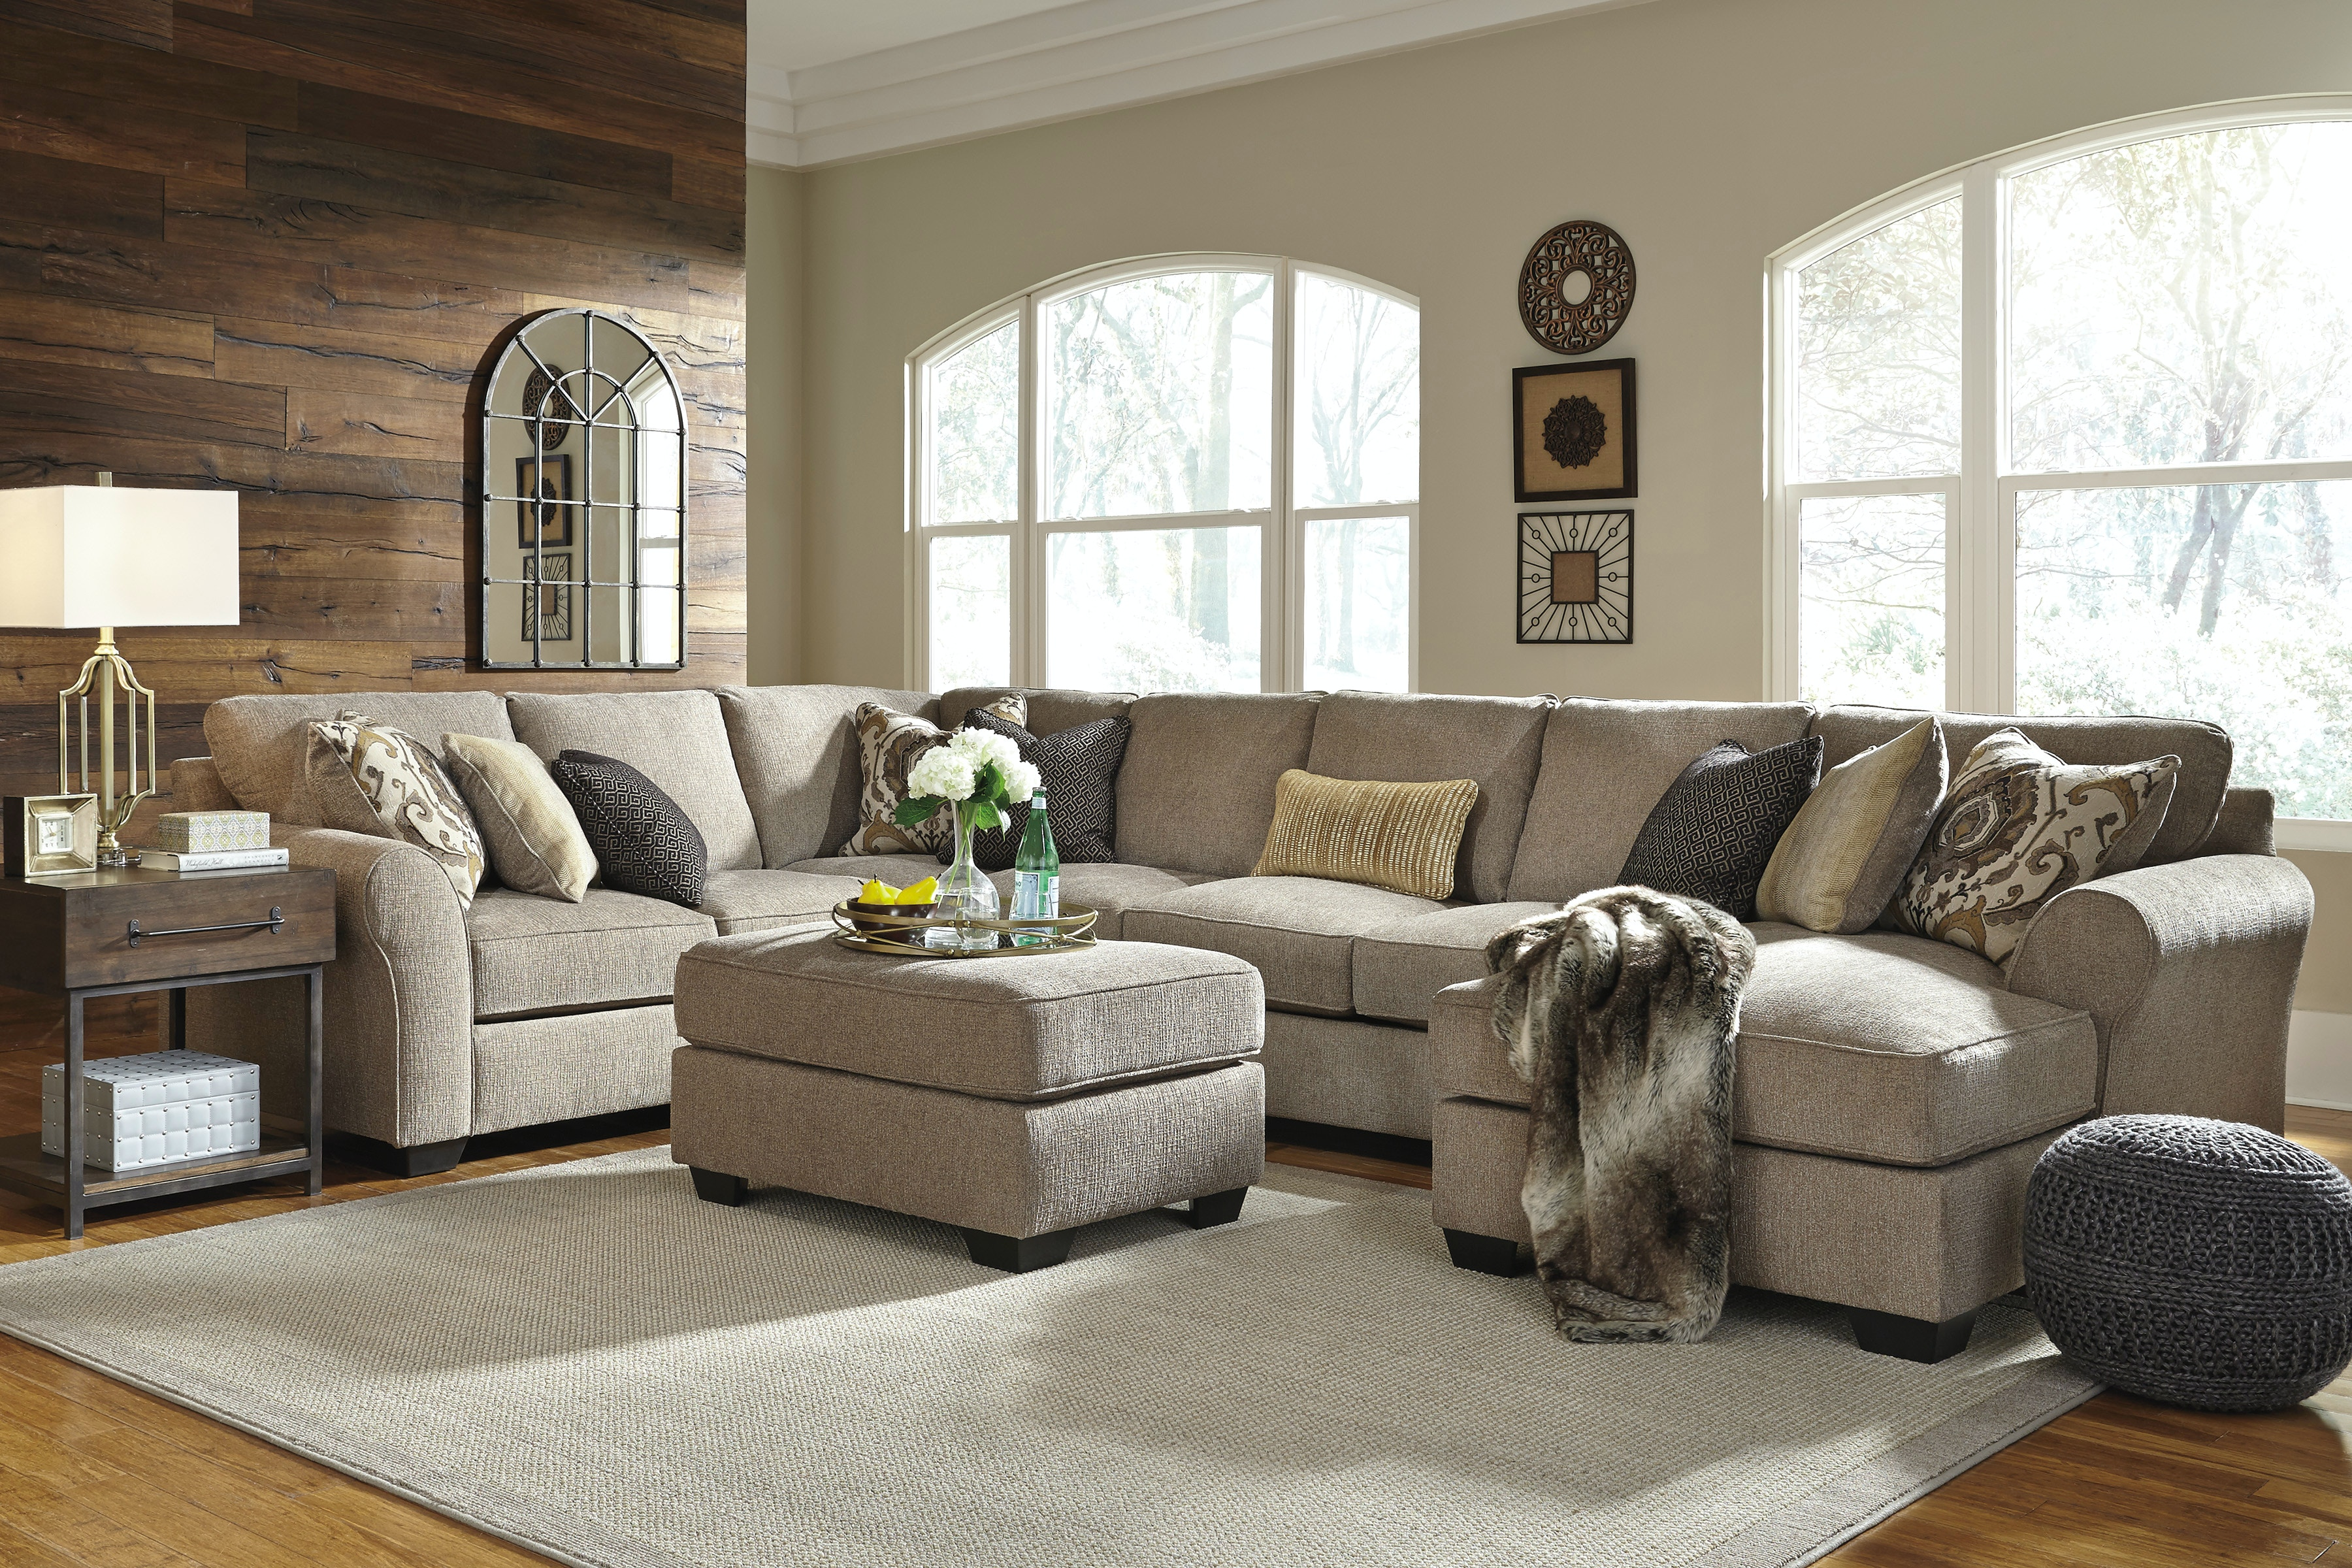 sectional seating couch couches deep architecture in wide seat oversized seated astonishing